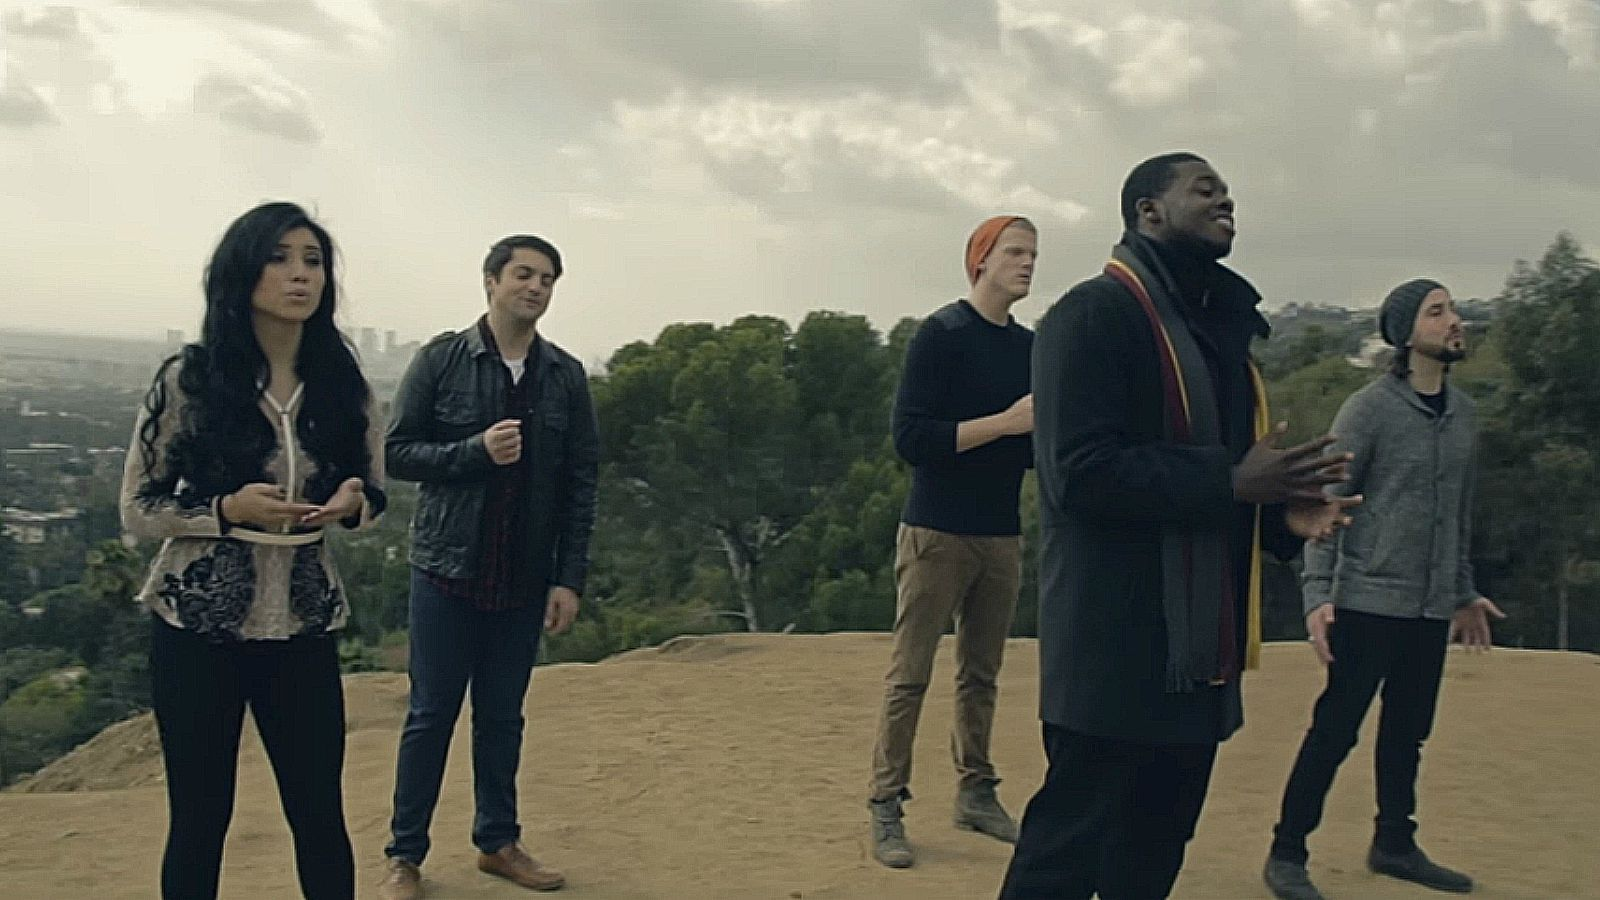 Pentatonix' 'Little Drummer Boy' Sung a Capella is a Christmas Classic.